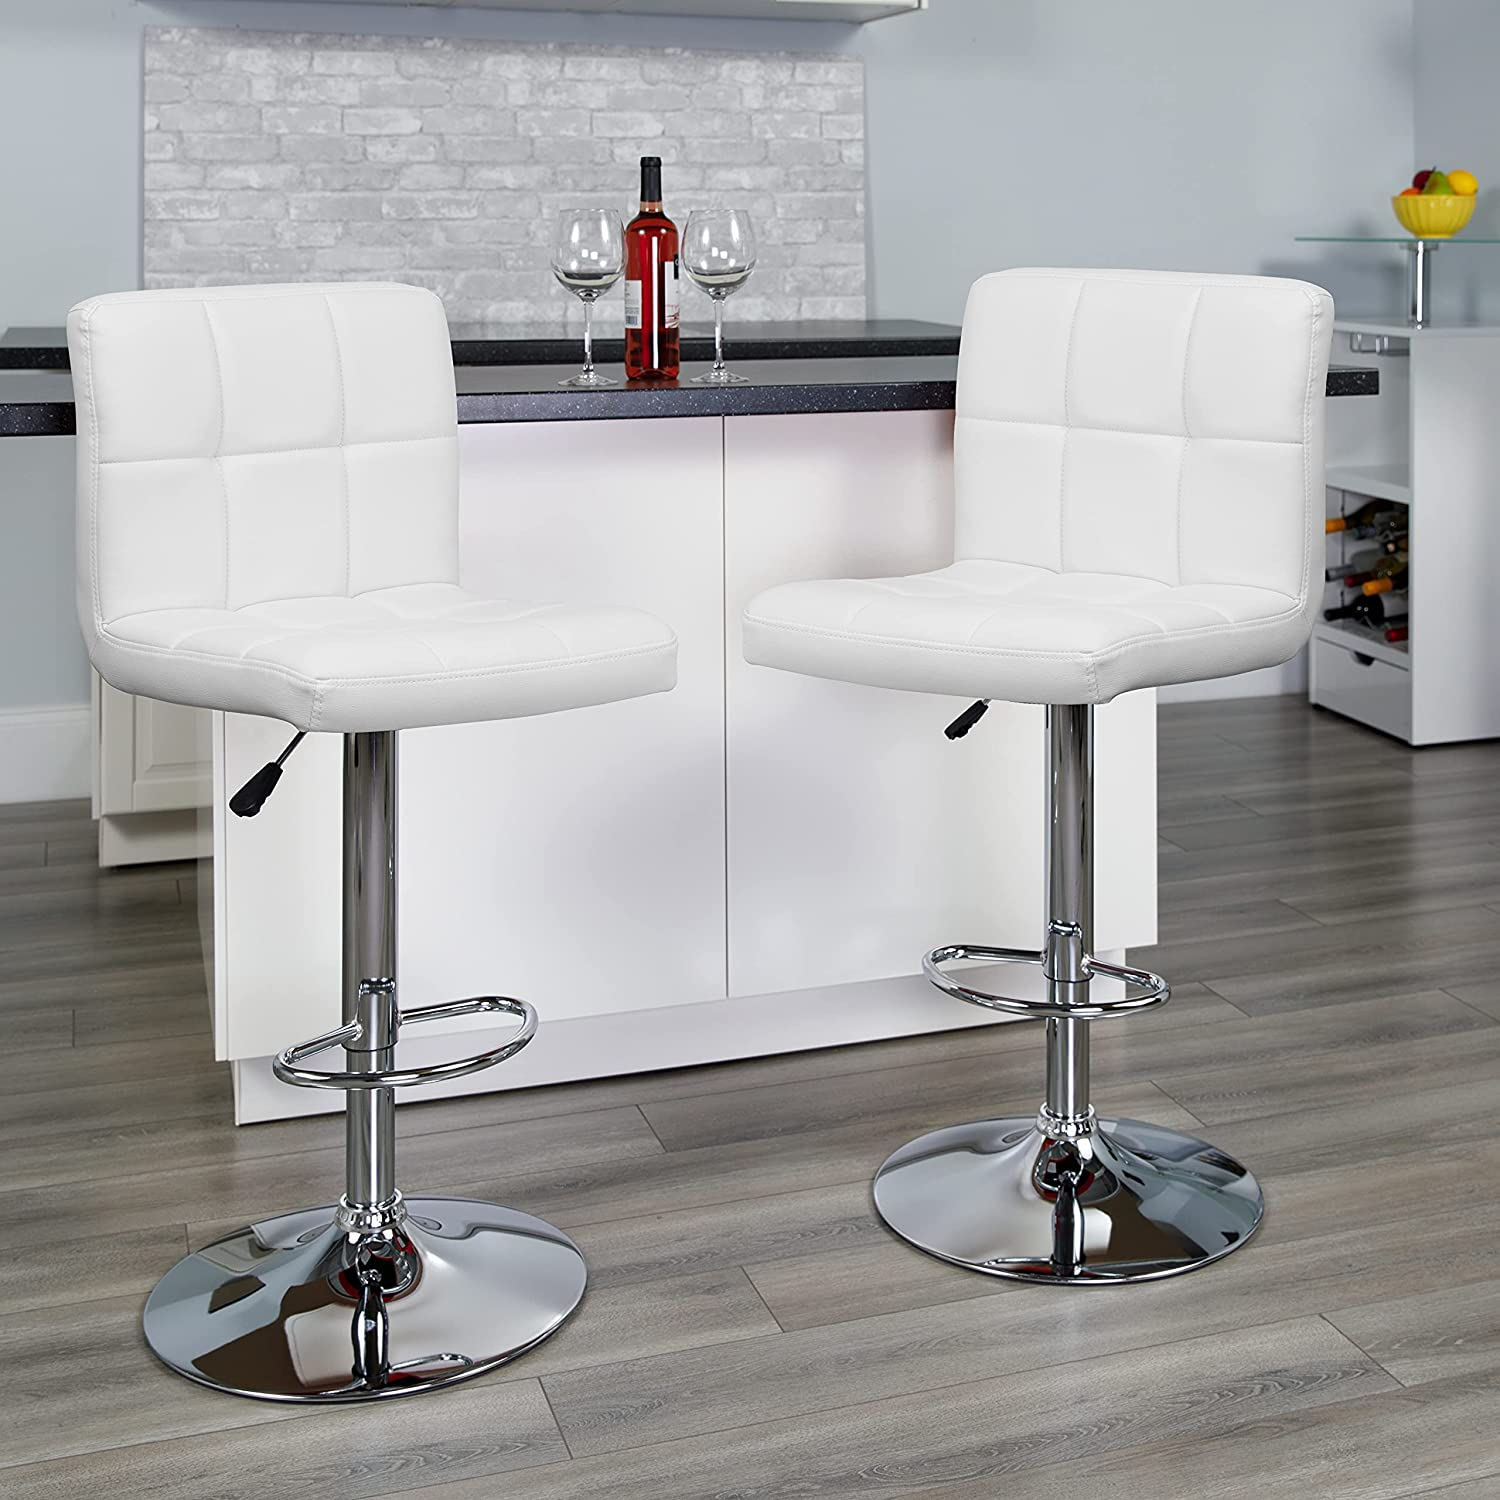 Flash Furniture 2 Pack Contemporary White Quilted Vinyl Adjustable Height Barstool with Chrome Base